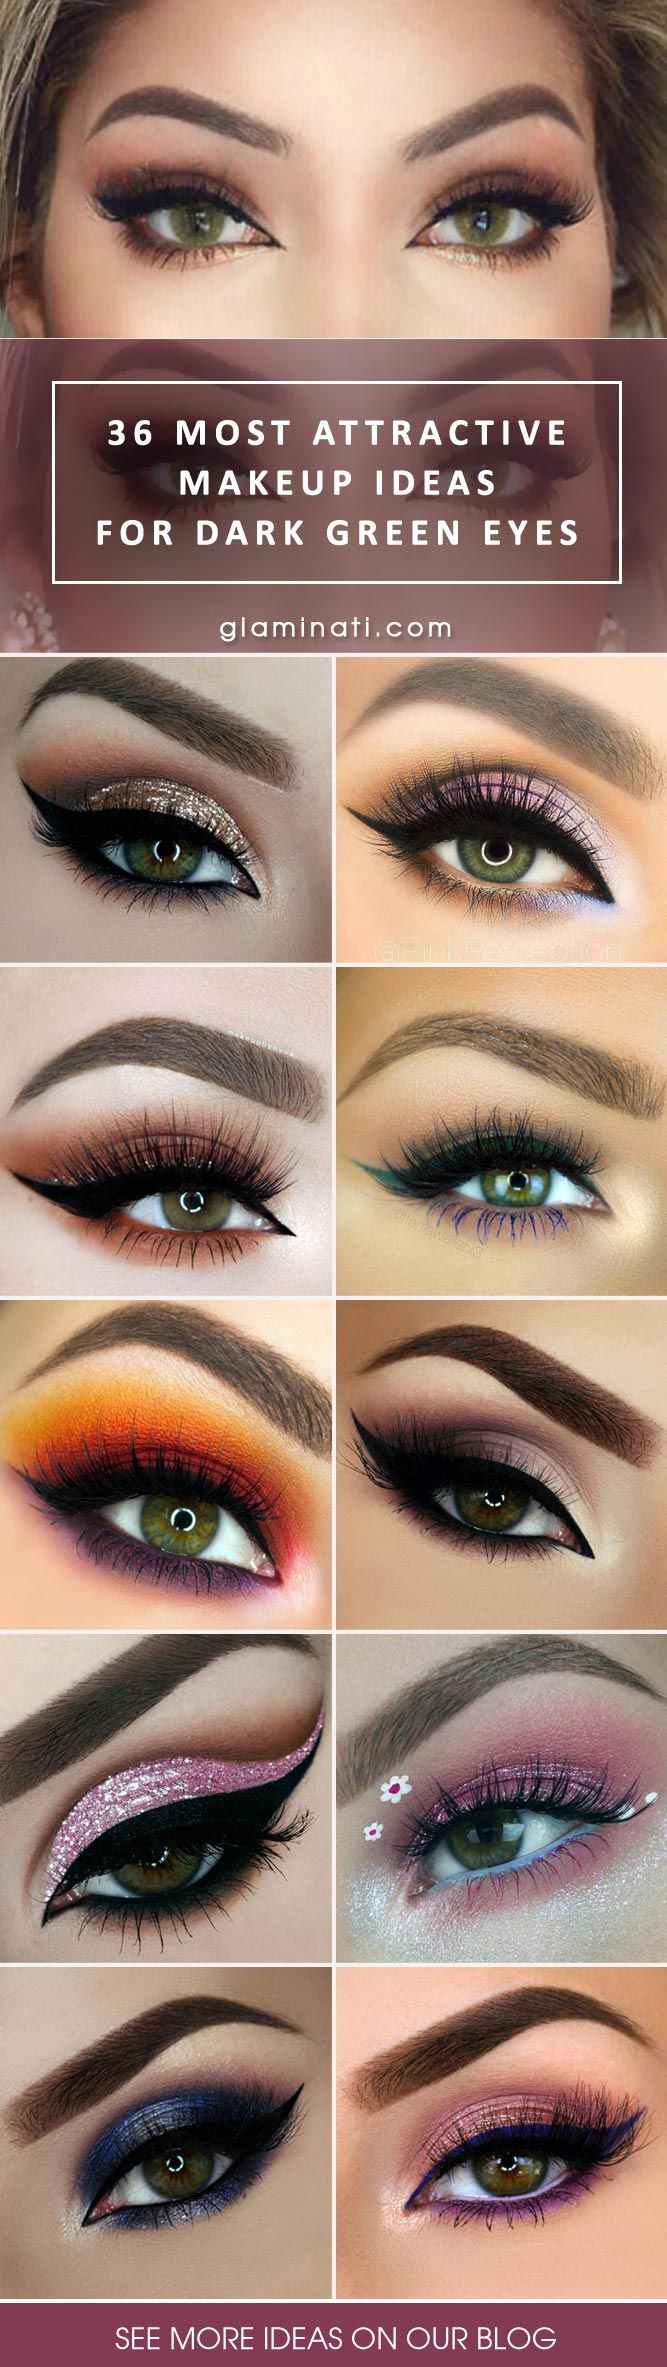 42 most attractive makeup ideas for dark green eyes | makeup